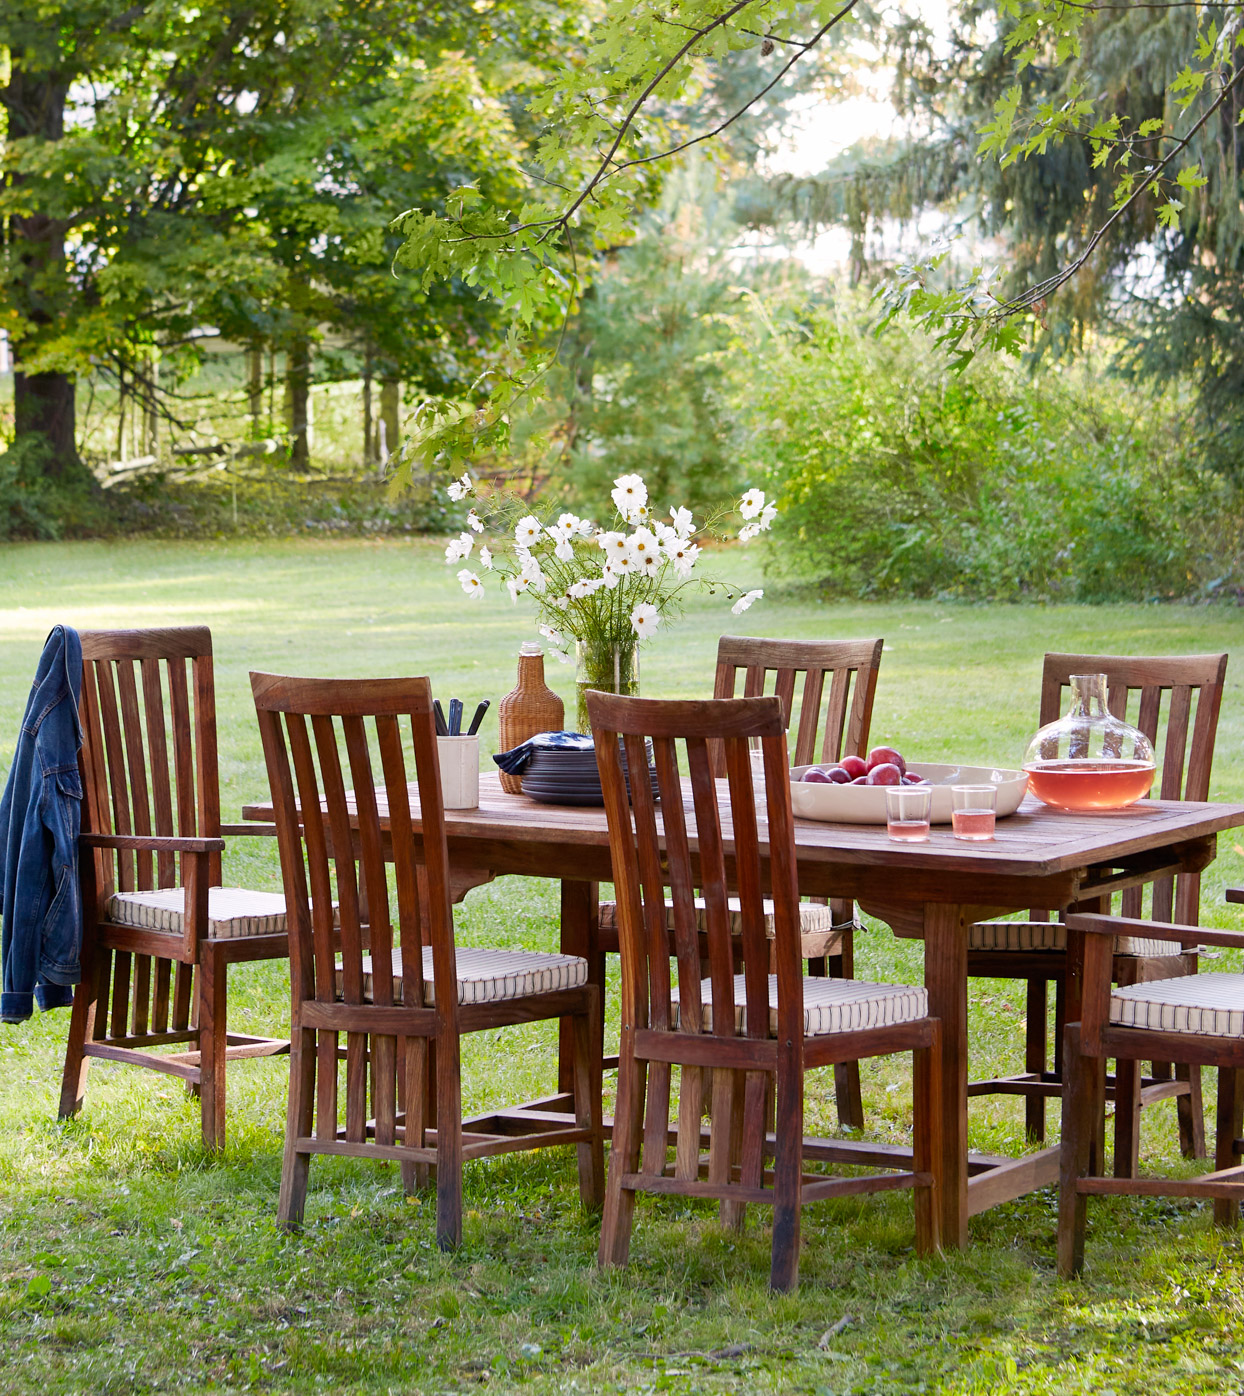 wooden dinning table and chairs in grass